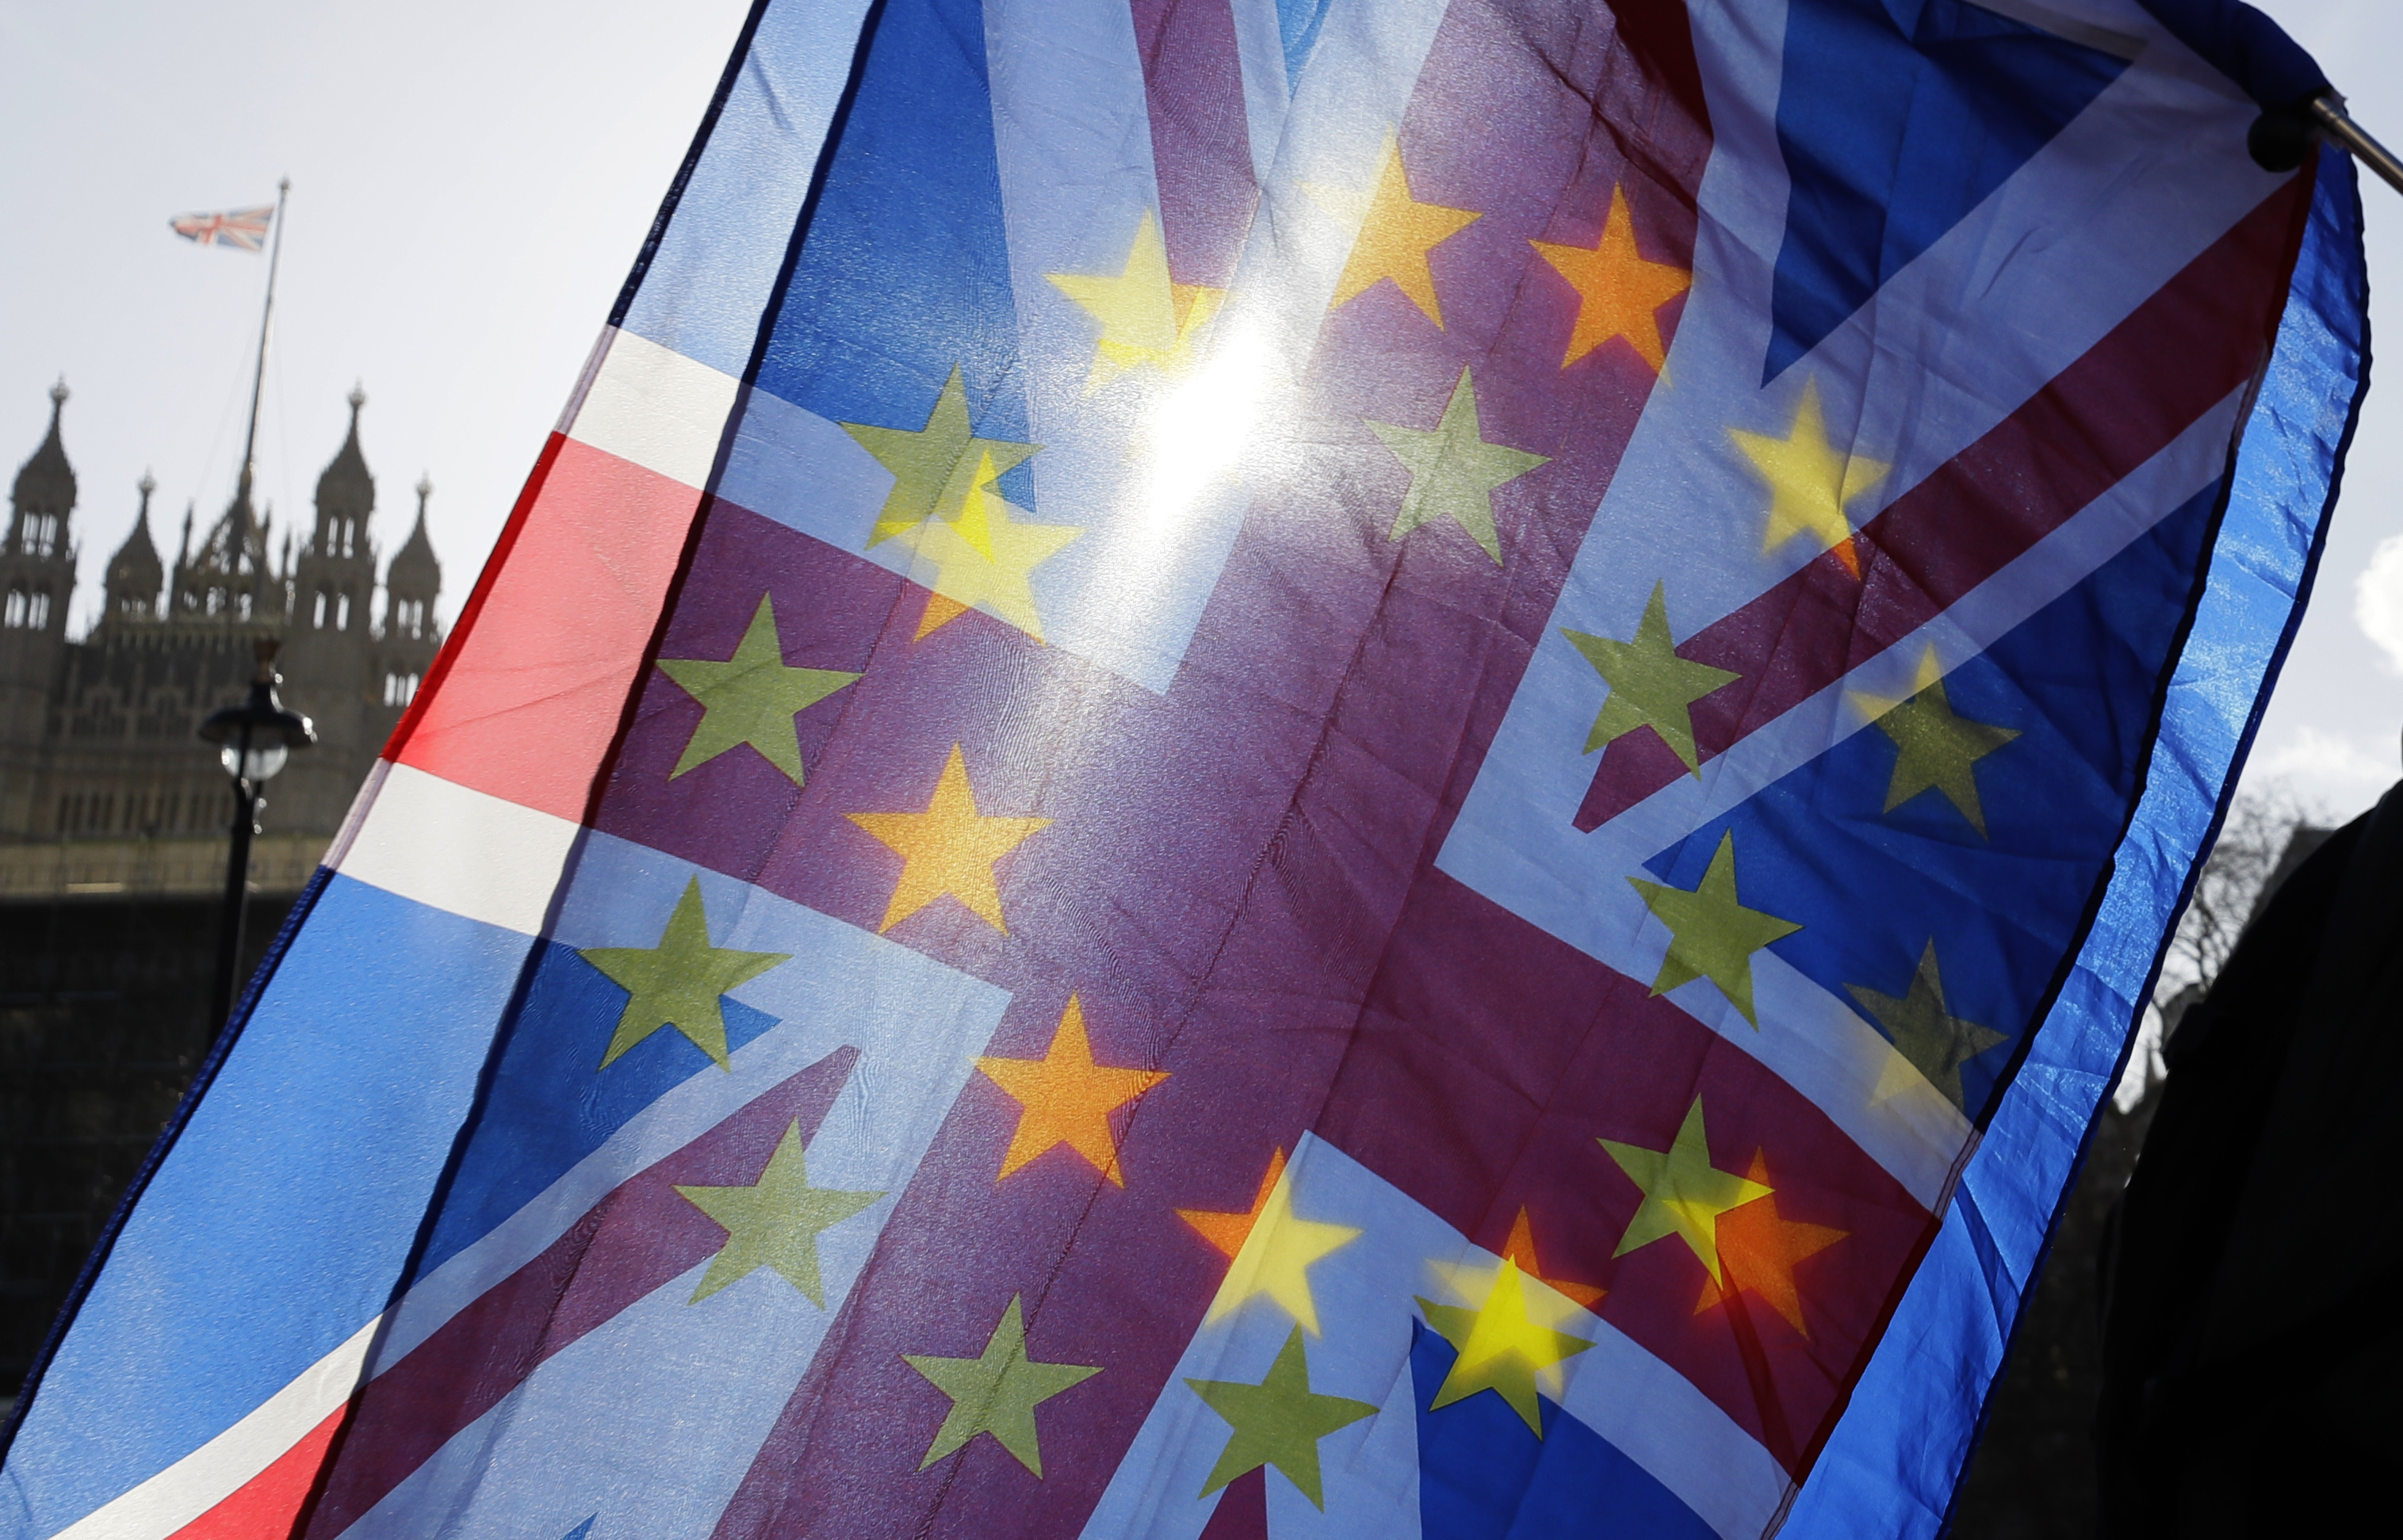 Brexit finally arrives Friday: A momentous yet quiet moment